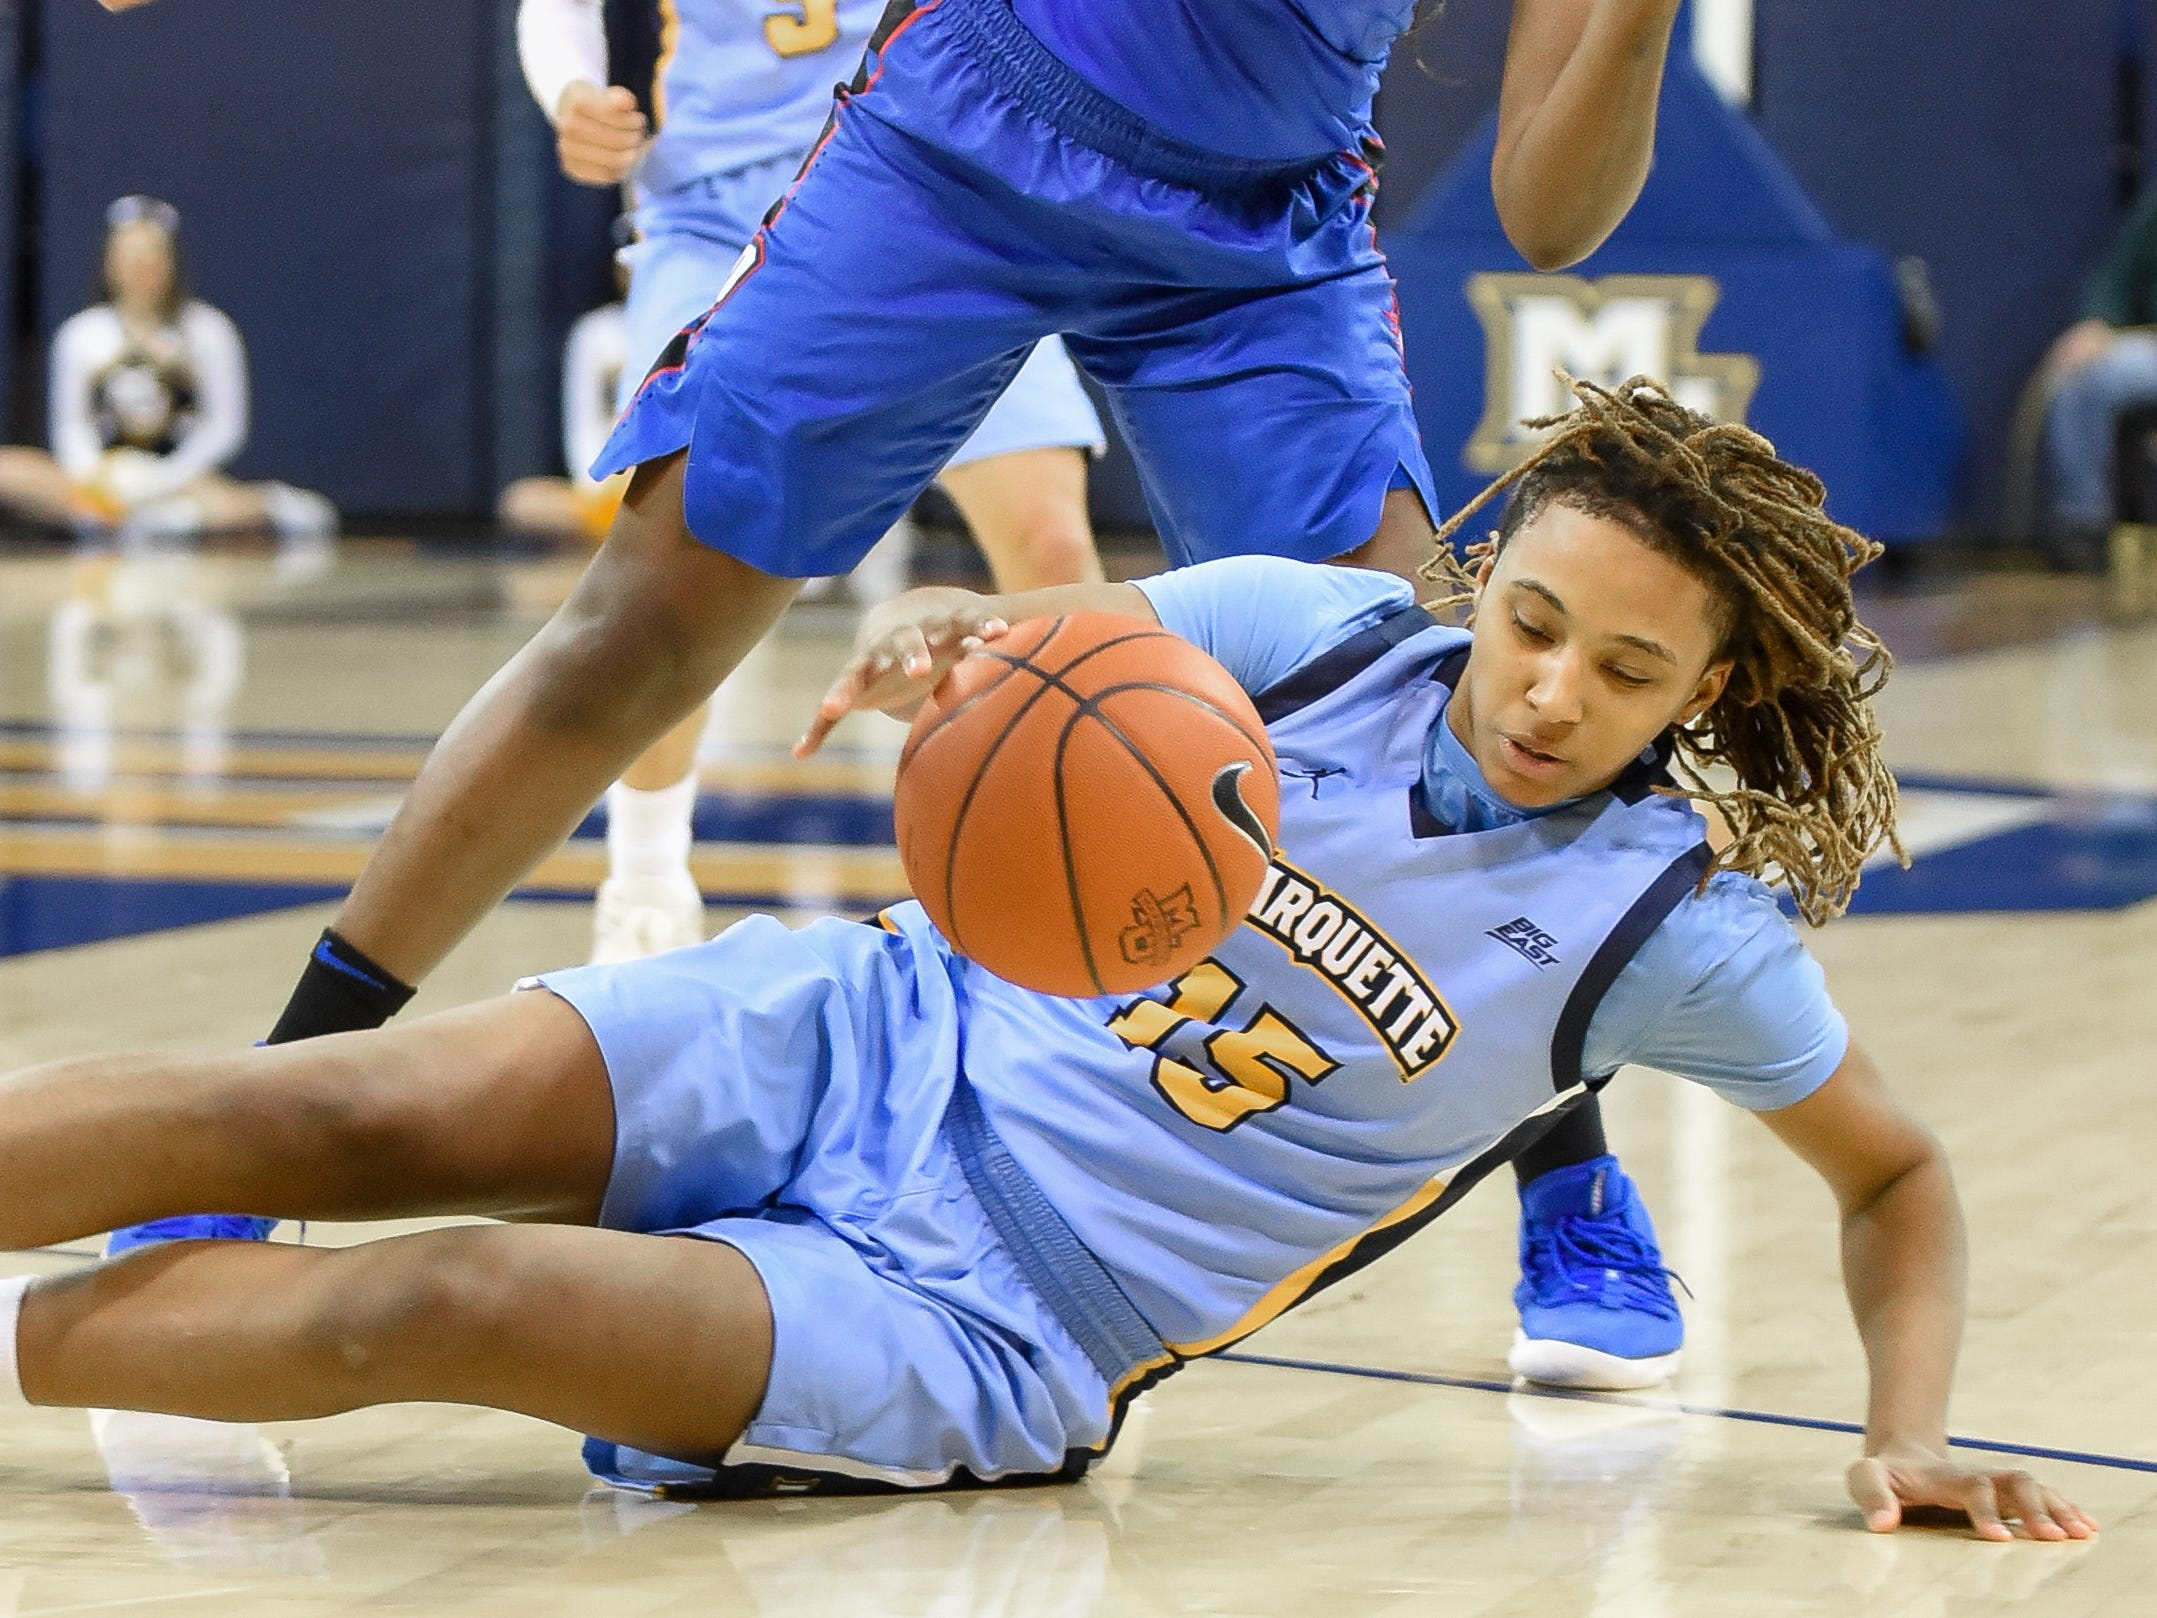 Marquette guard Amani Wilborn beats DePaul guard Ashton Millender to the ball and draws a foul in a Big East Conference women's basketball game Friday, January 4, 2019, at the Al McGuire Center on the Marquette campus.